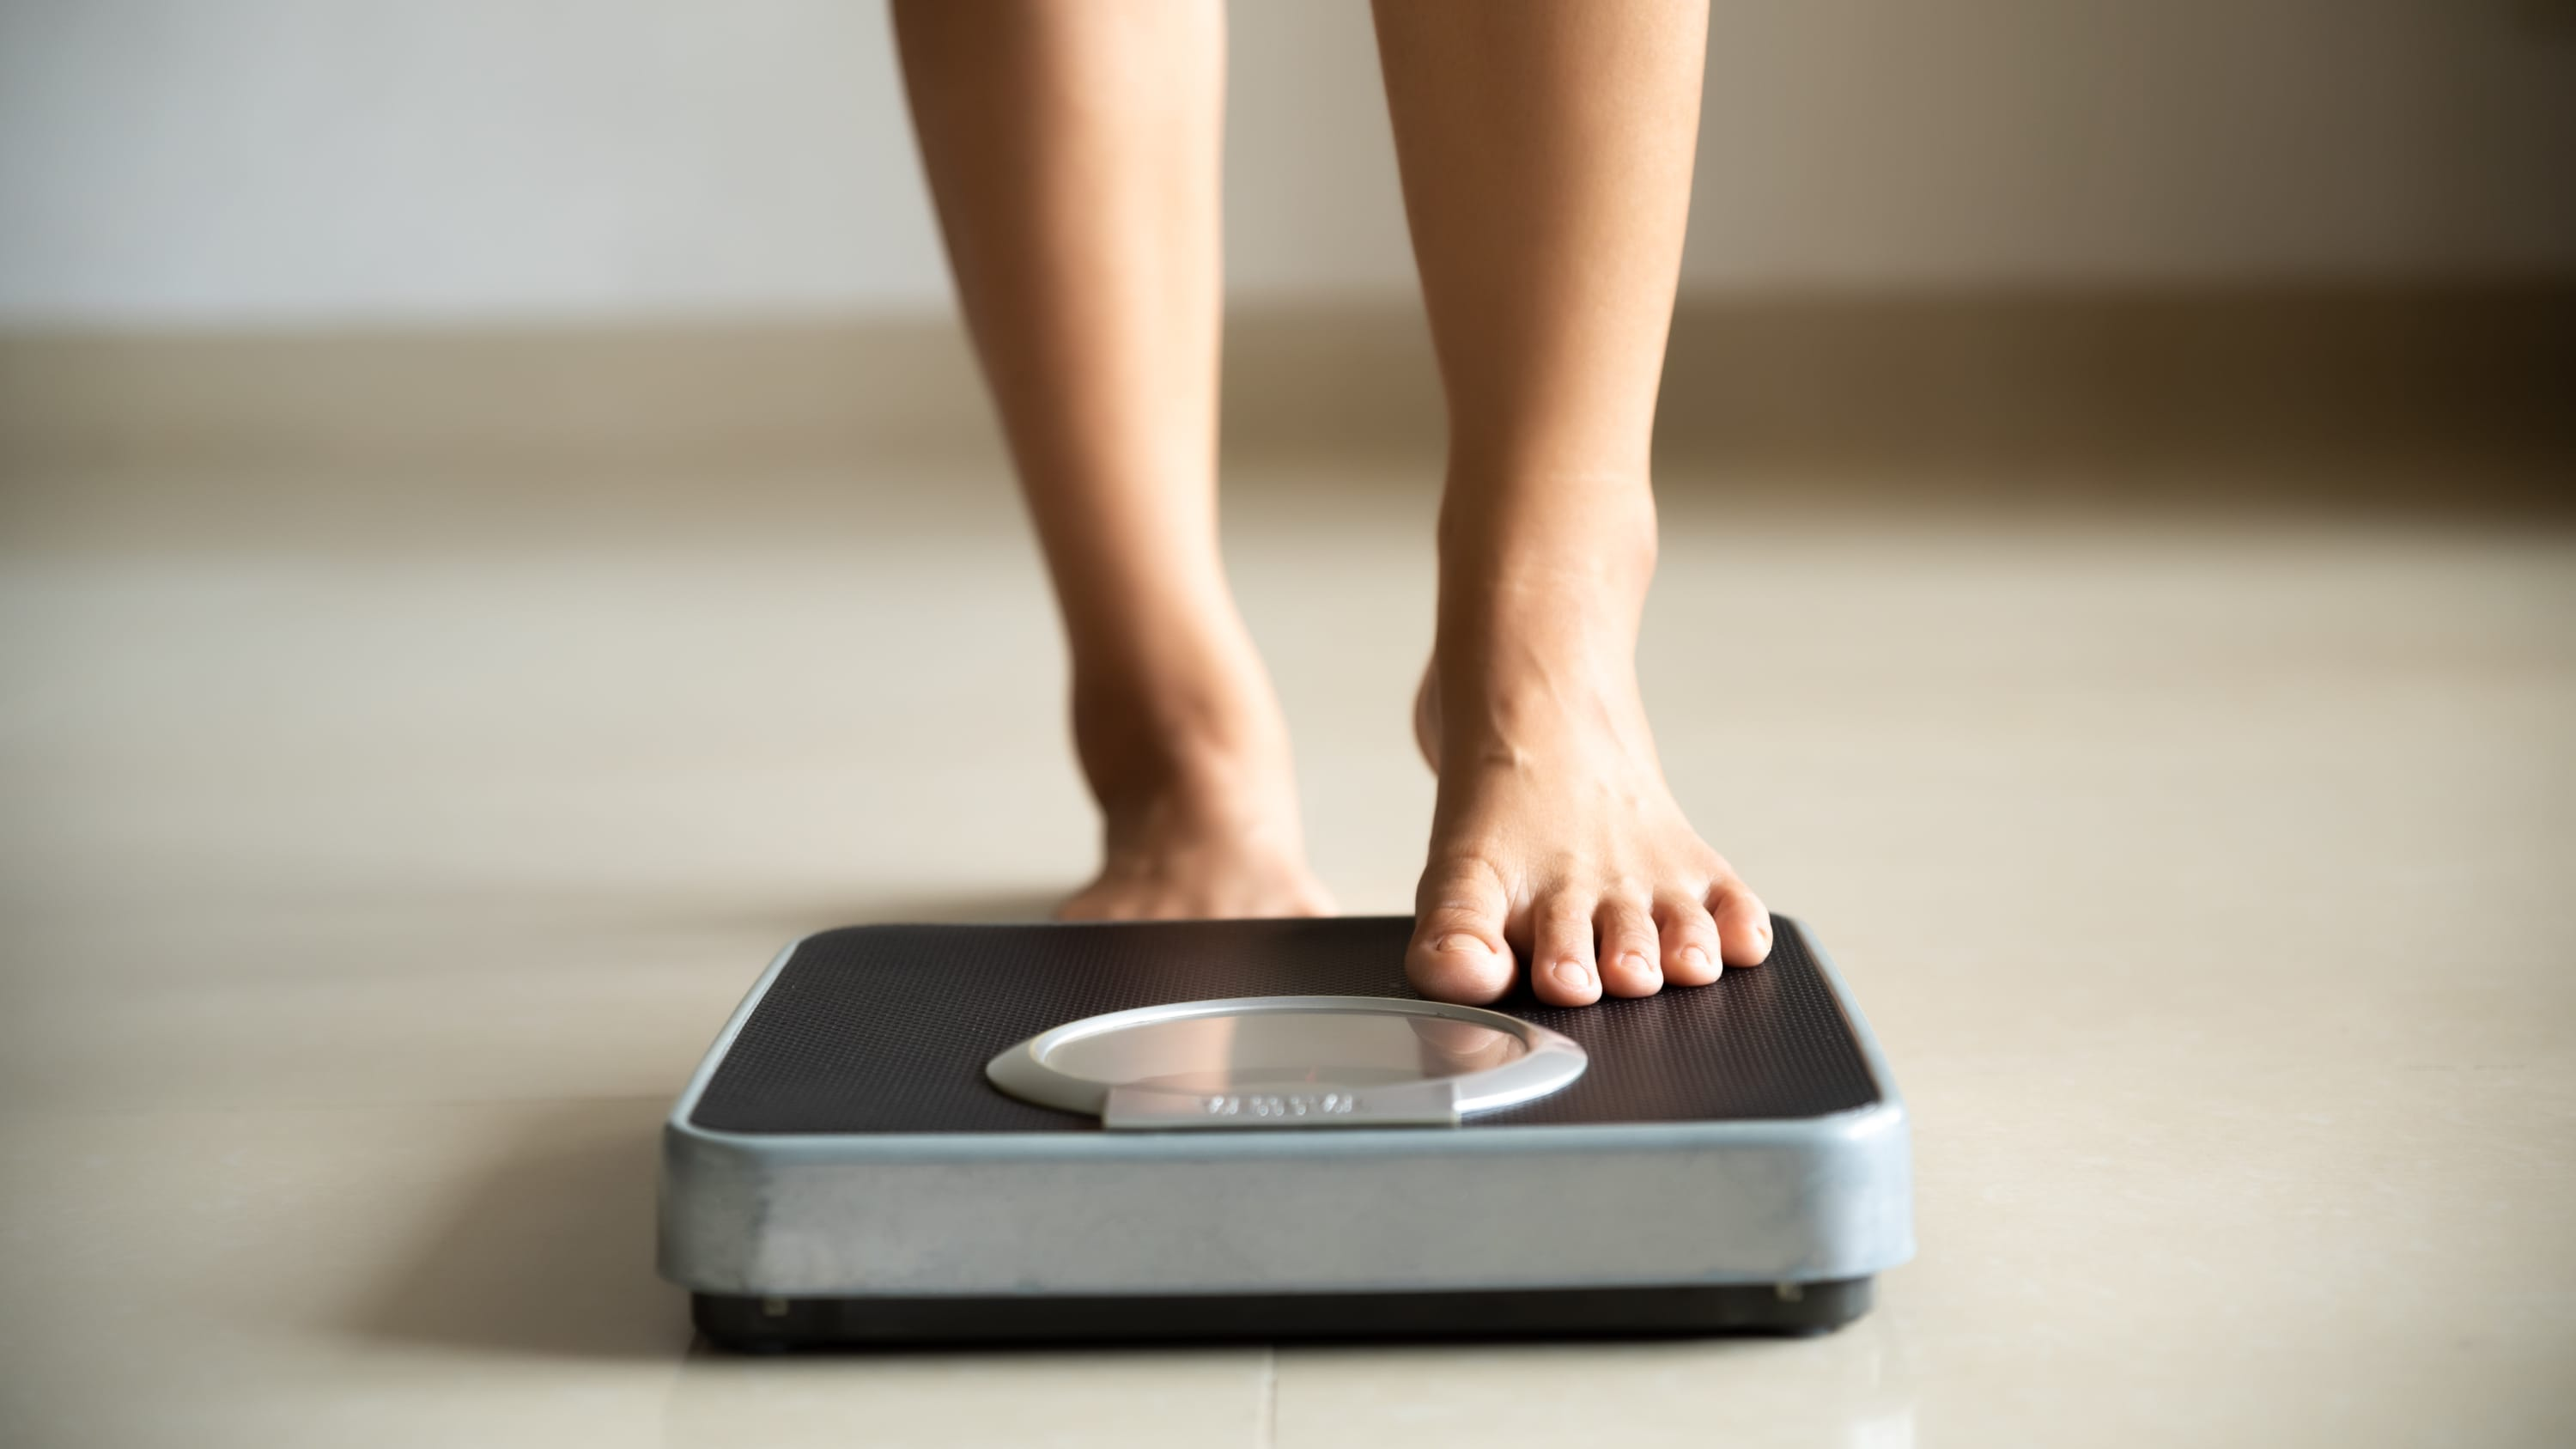 woman stepping on the scale, hoping for weight loss